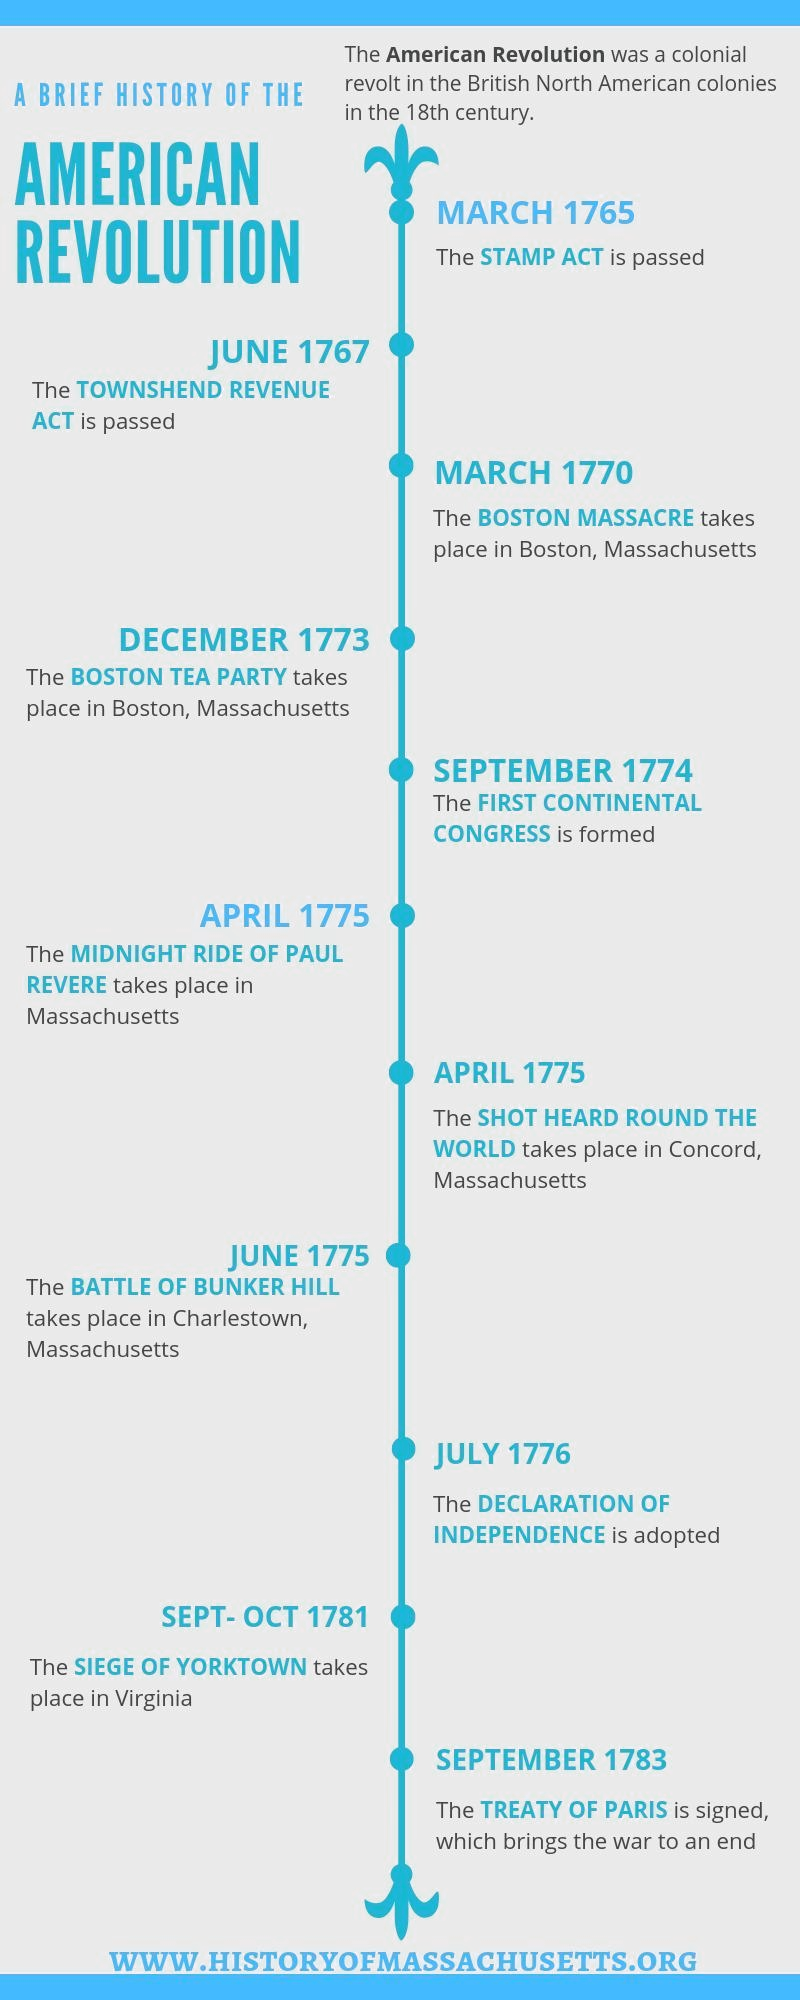 Want to know more about the American Revolution? Click on the image to see the timeline of events! #historyofmassachusettsblog #americanrevolution #infographicWant #to #know #more #about #the #American #Revolution? #Click #on #the #image #to #see #the #timeline #of #events! ##historyofmassachusettsblog ##americanrevolution ##infographic #American revolution